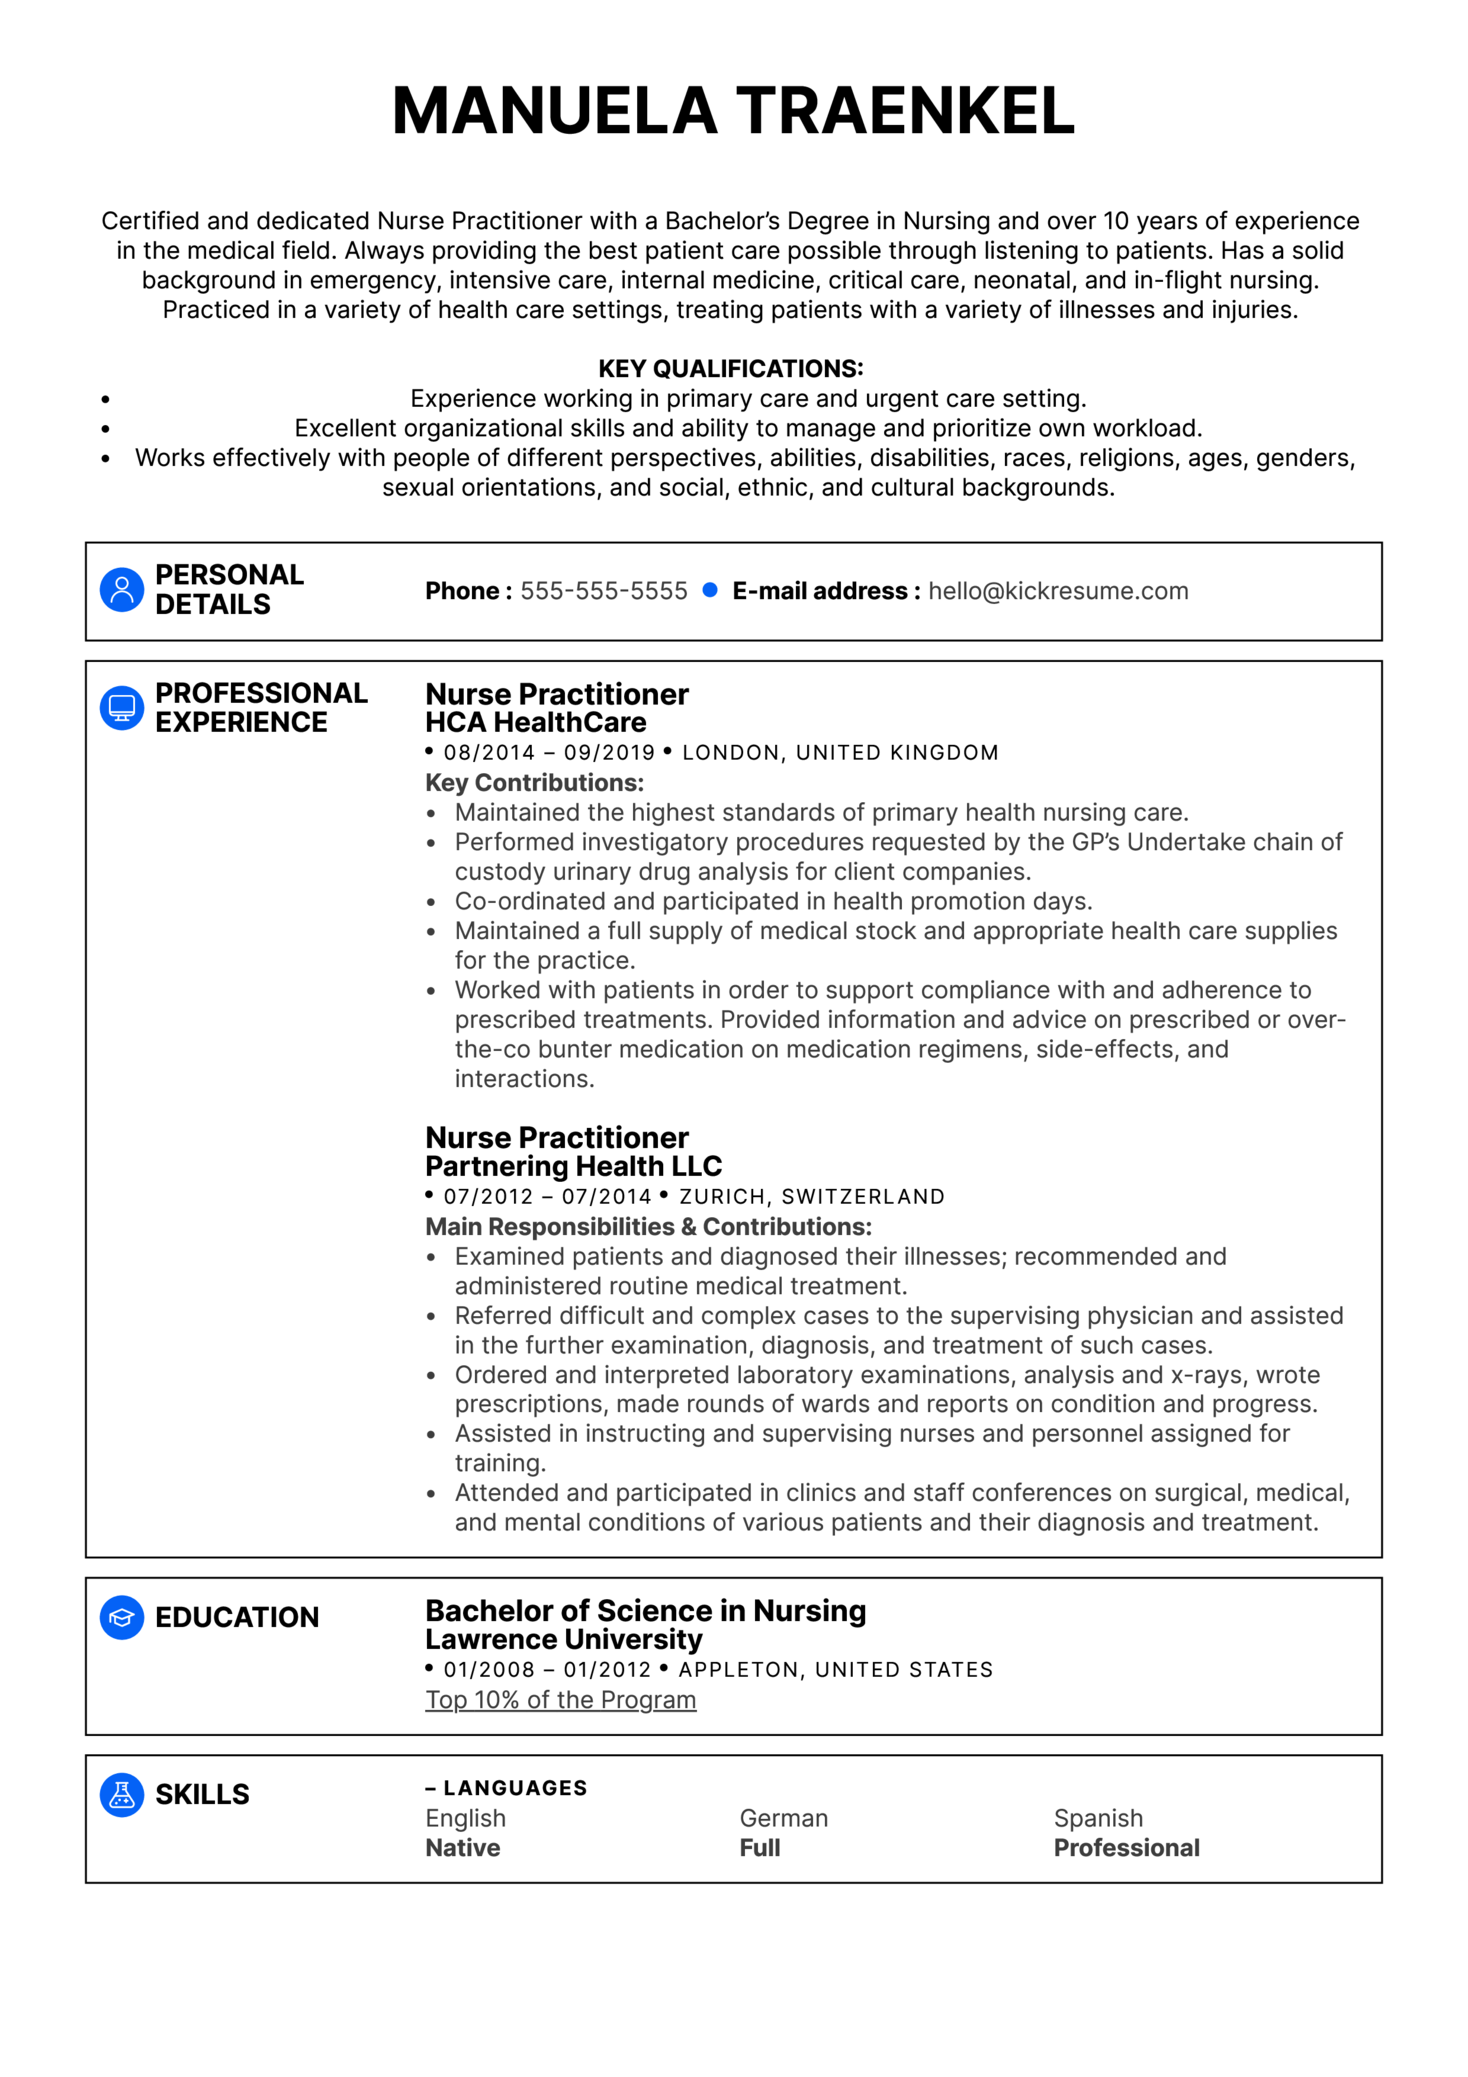 resume examples by real people  nurse practitioner resume example